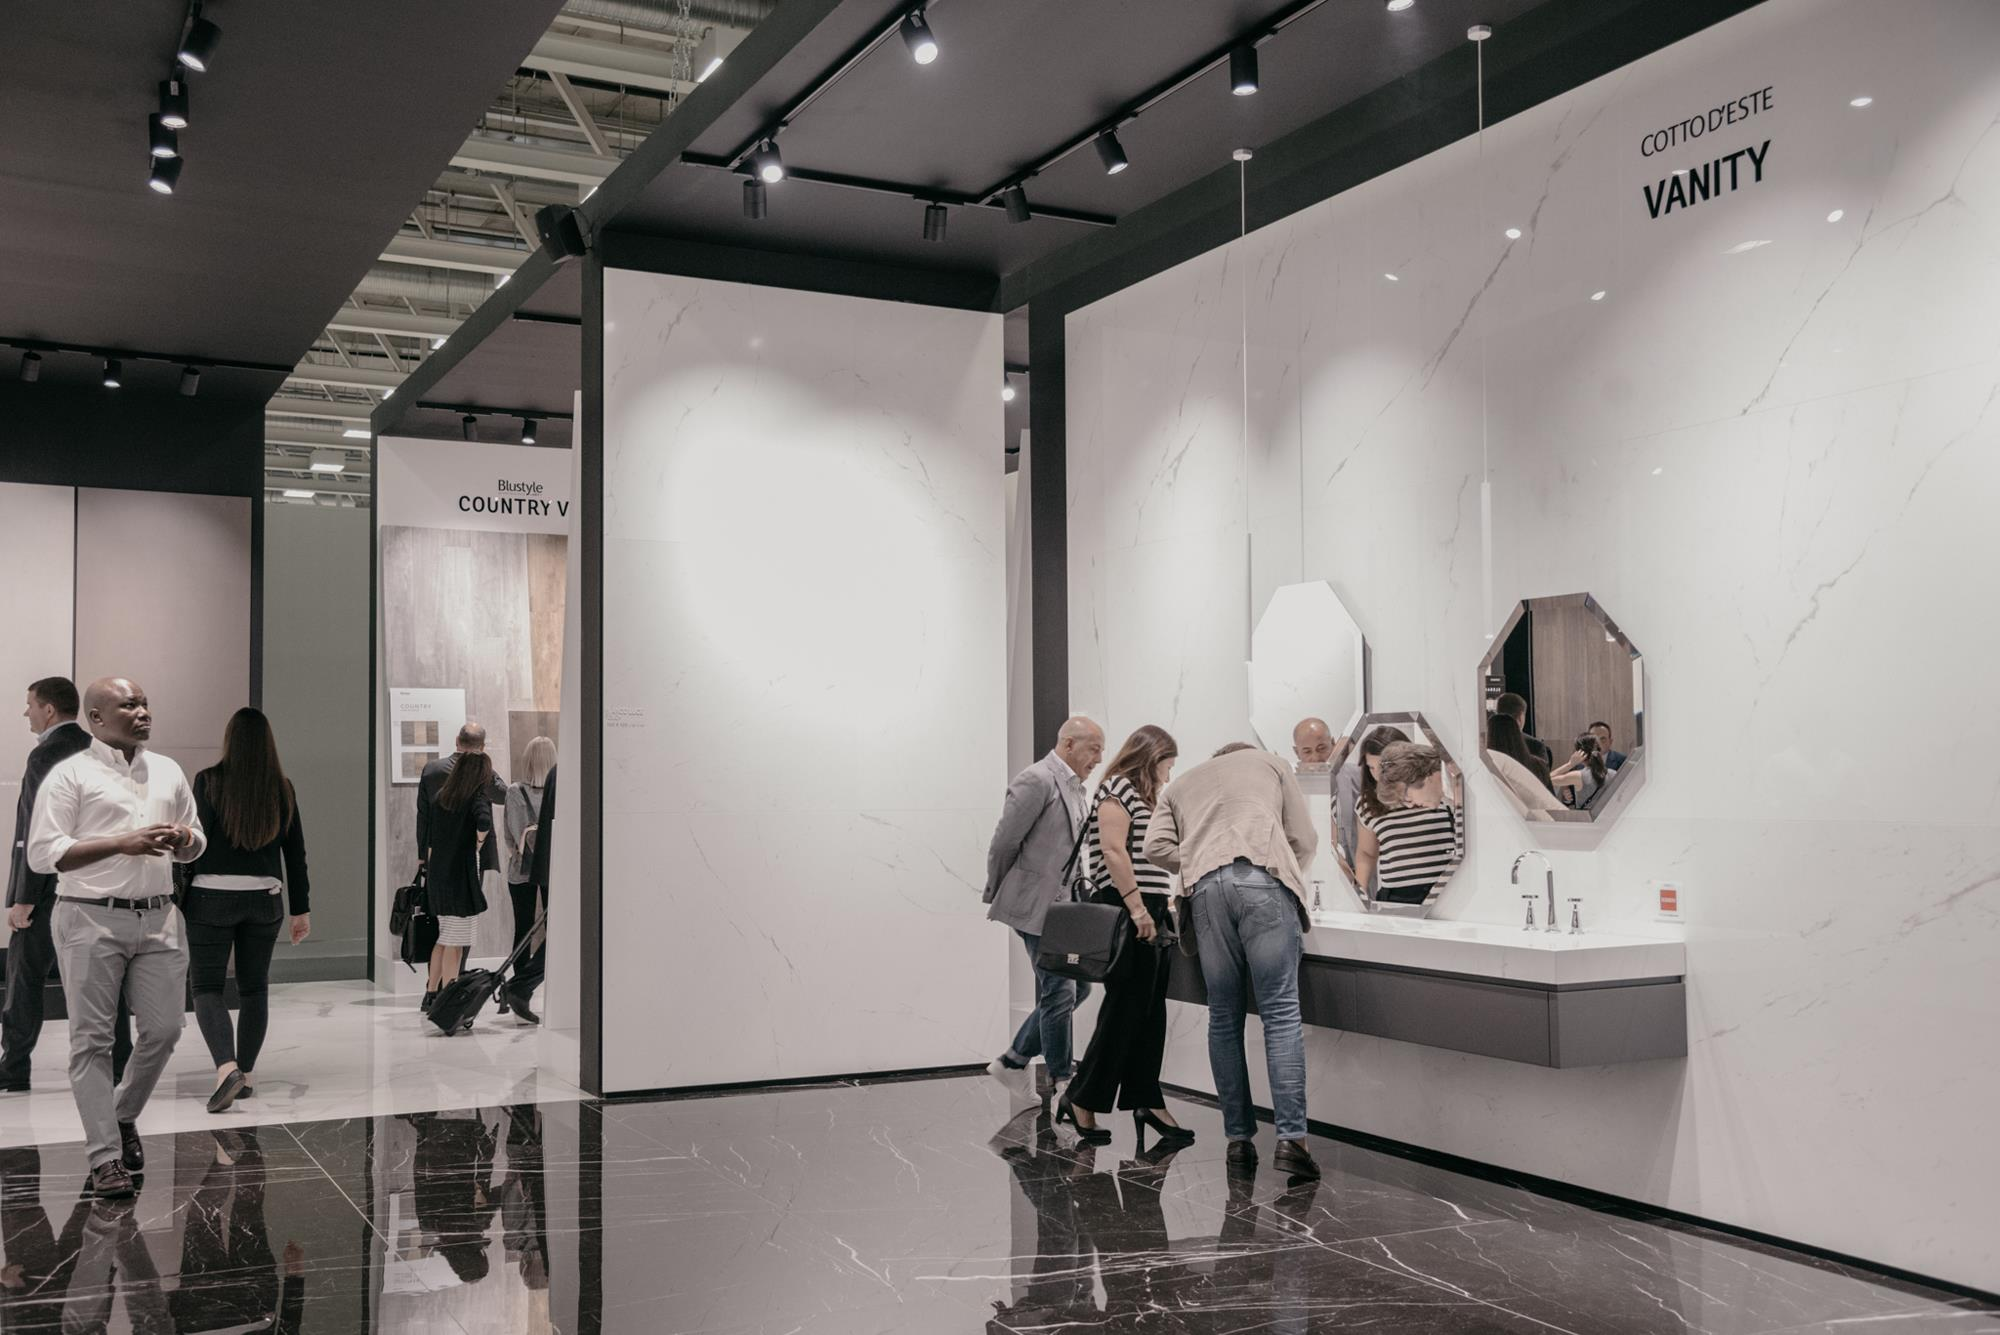 Cersaie 2018, Cotto d'Este takes ceramics to a new level: Photo 35